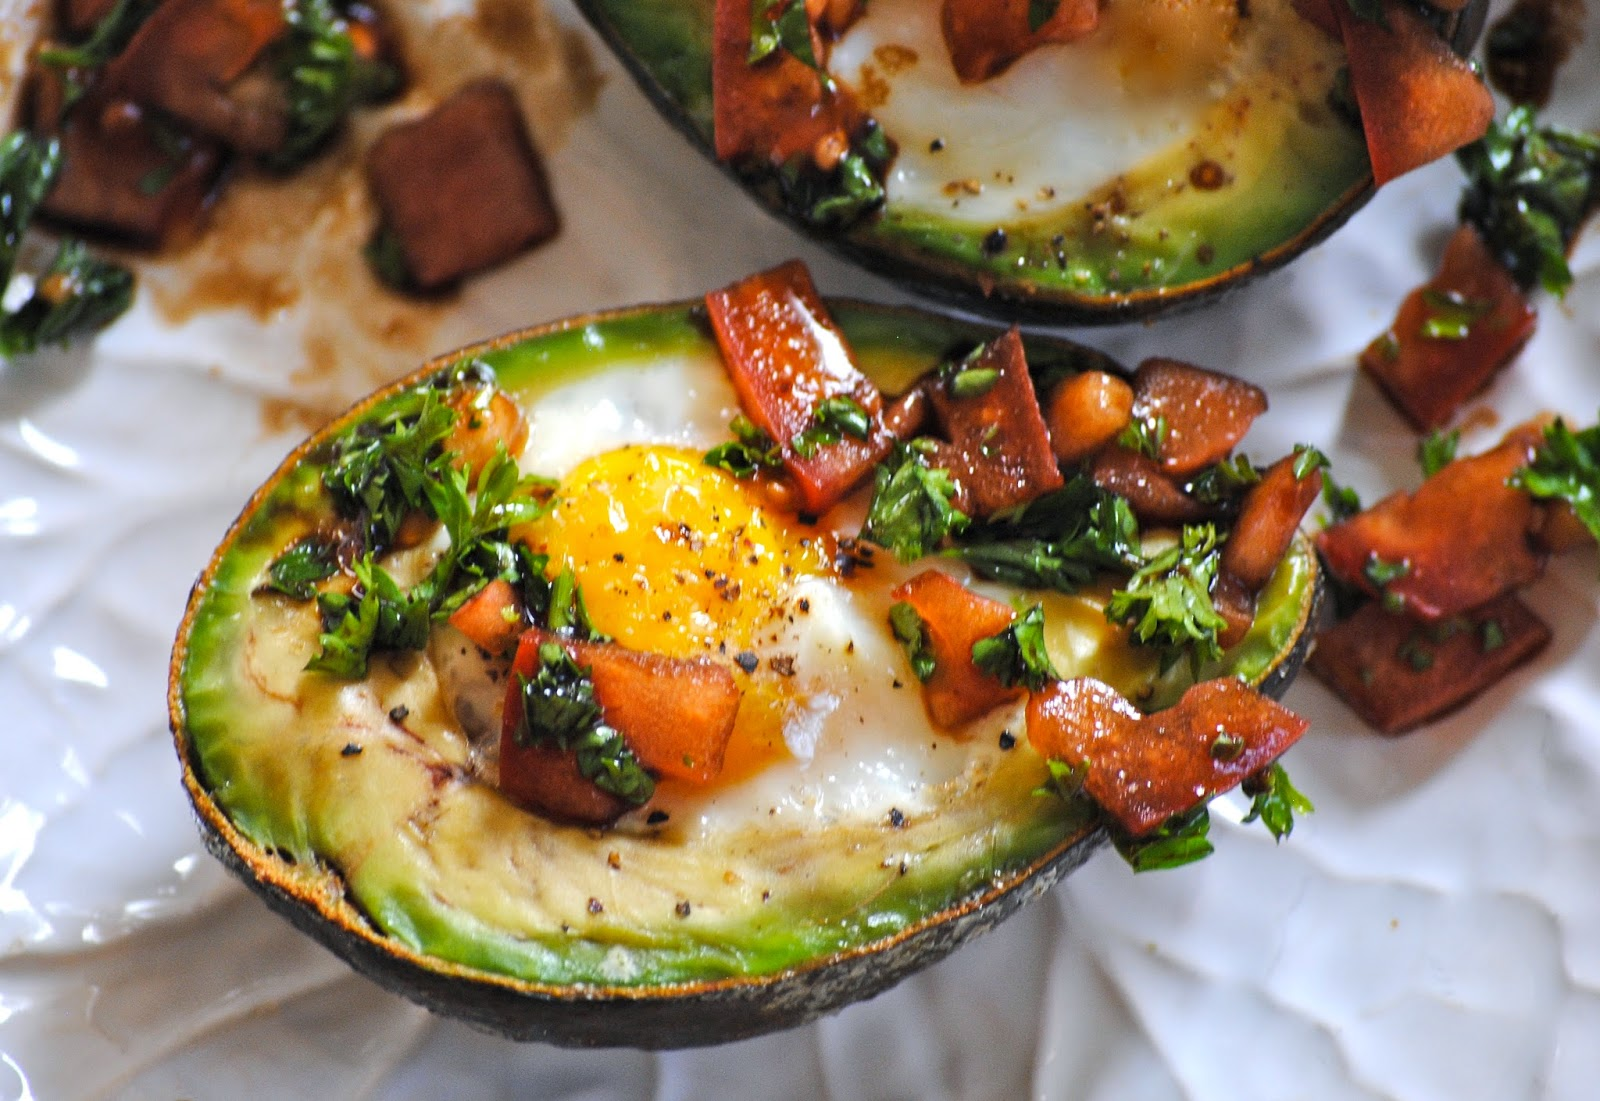 Bakeaway with Me: Avocado Baked Eggs with Tomato-Basil Salad